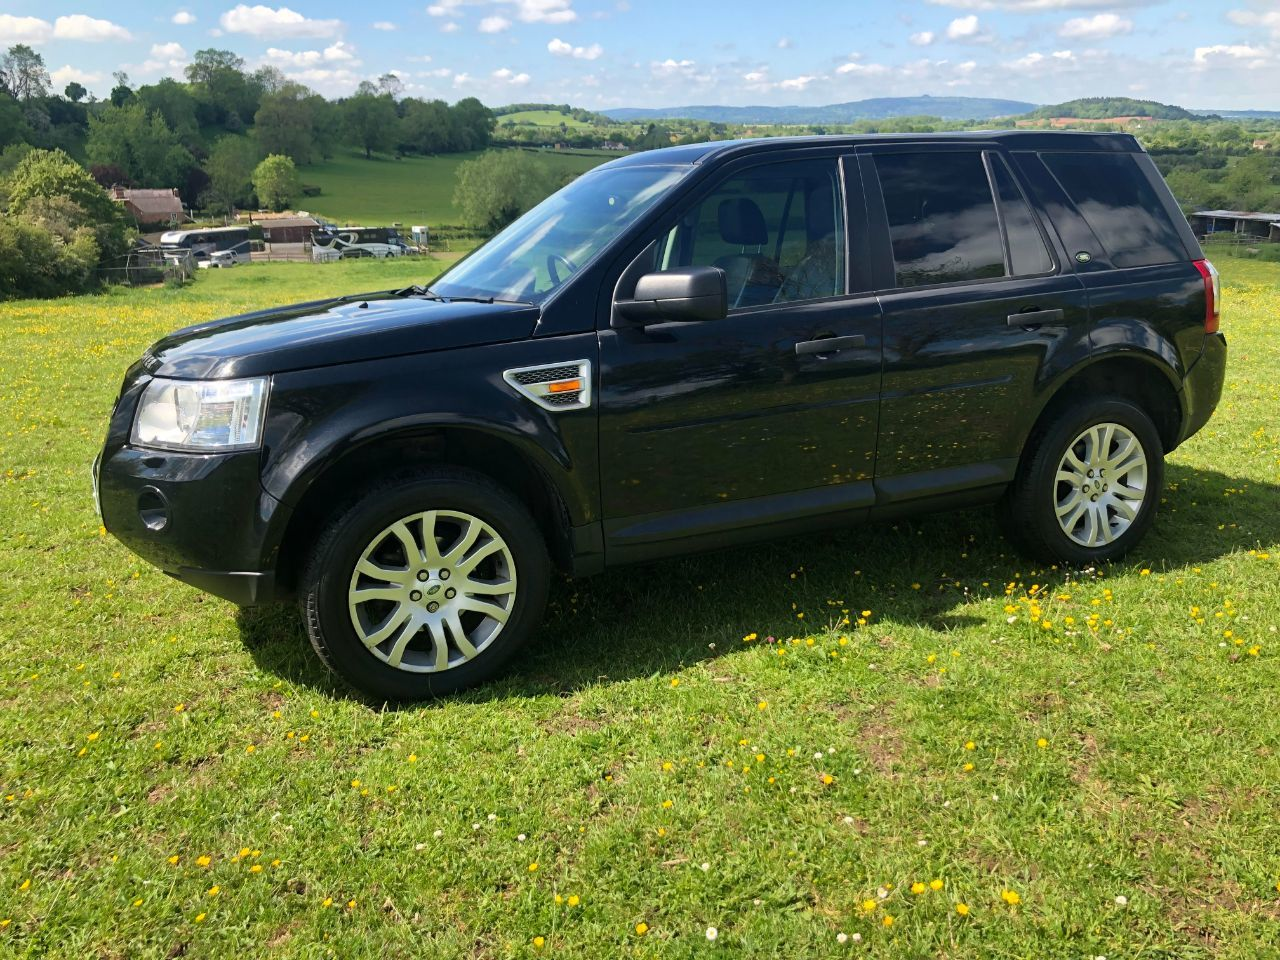 2008 Land Rover Freelander 2.2 Td4 HSE 5dr Auto